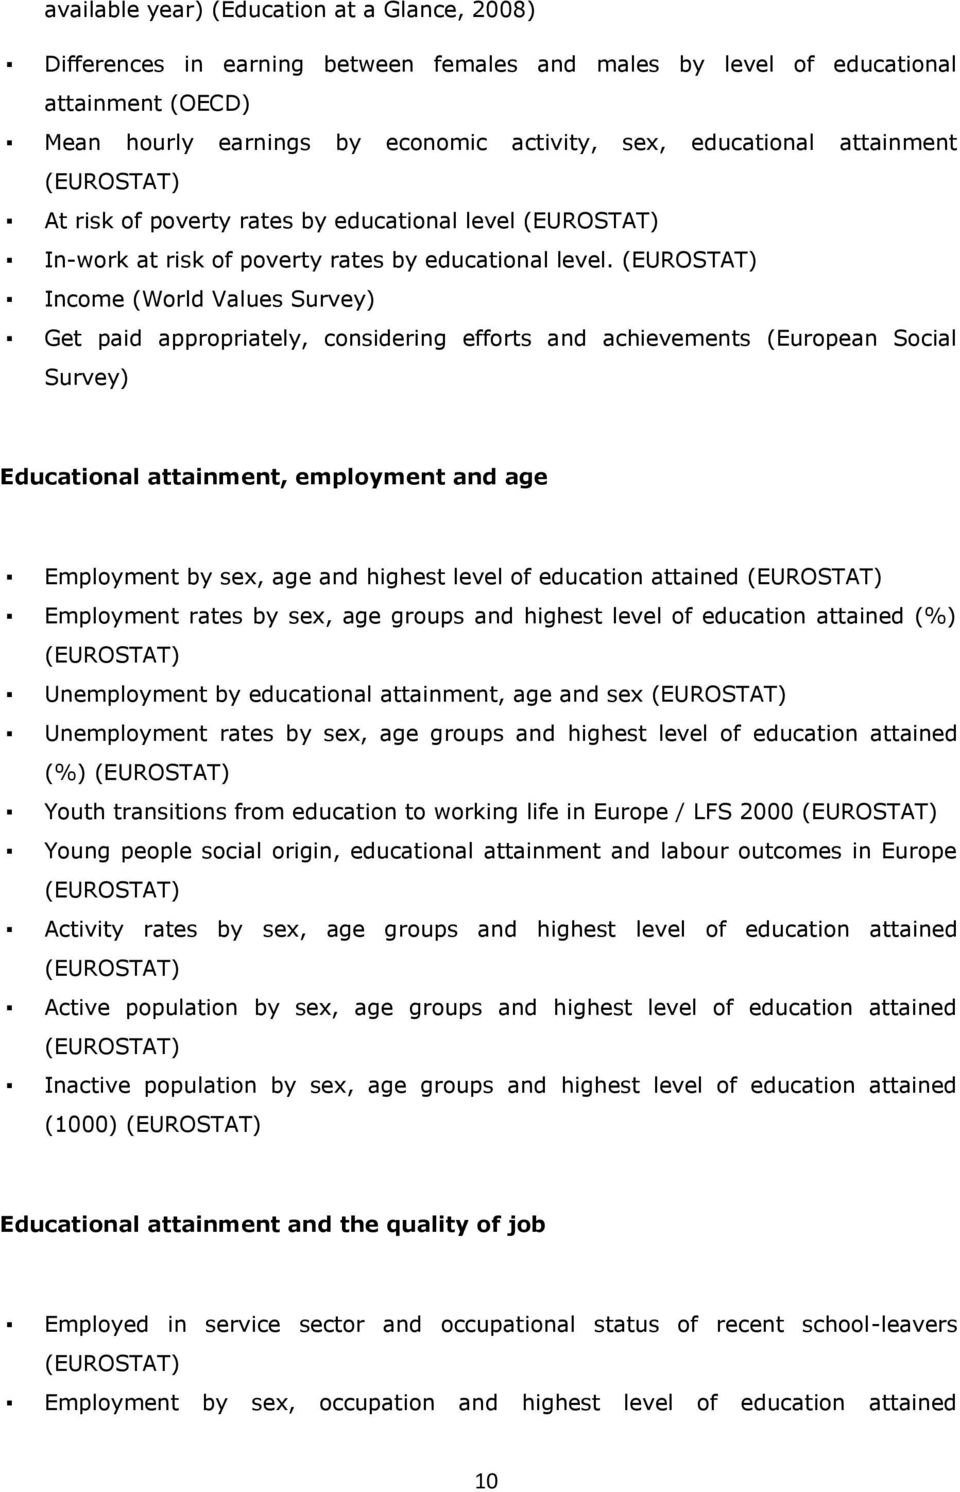 (EUROSTAT) Income (World Values Survey) Get paid appropriately, considering efforts and achievements (European Social Survey) Educational attainment, employment and age Employment by sex, age and